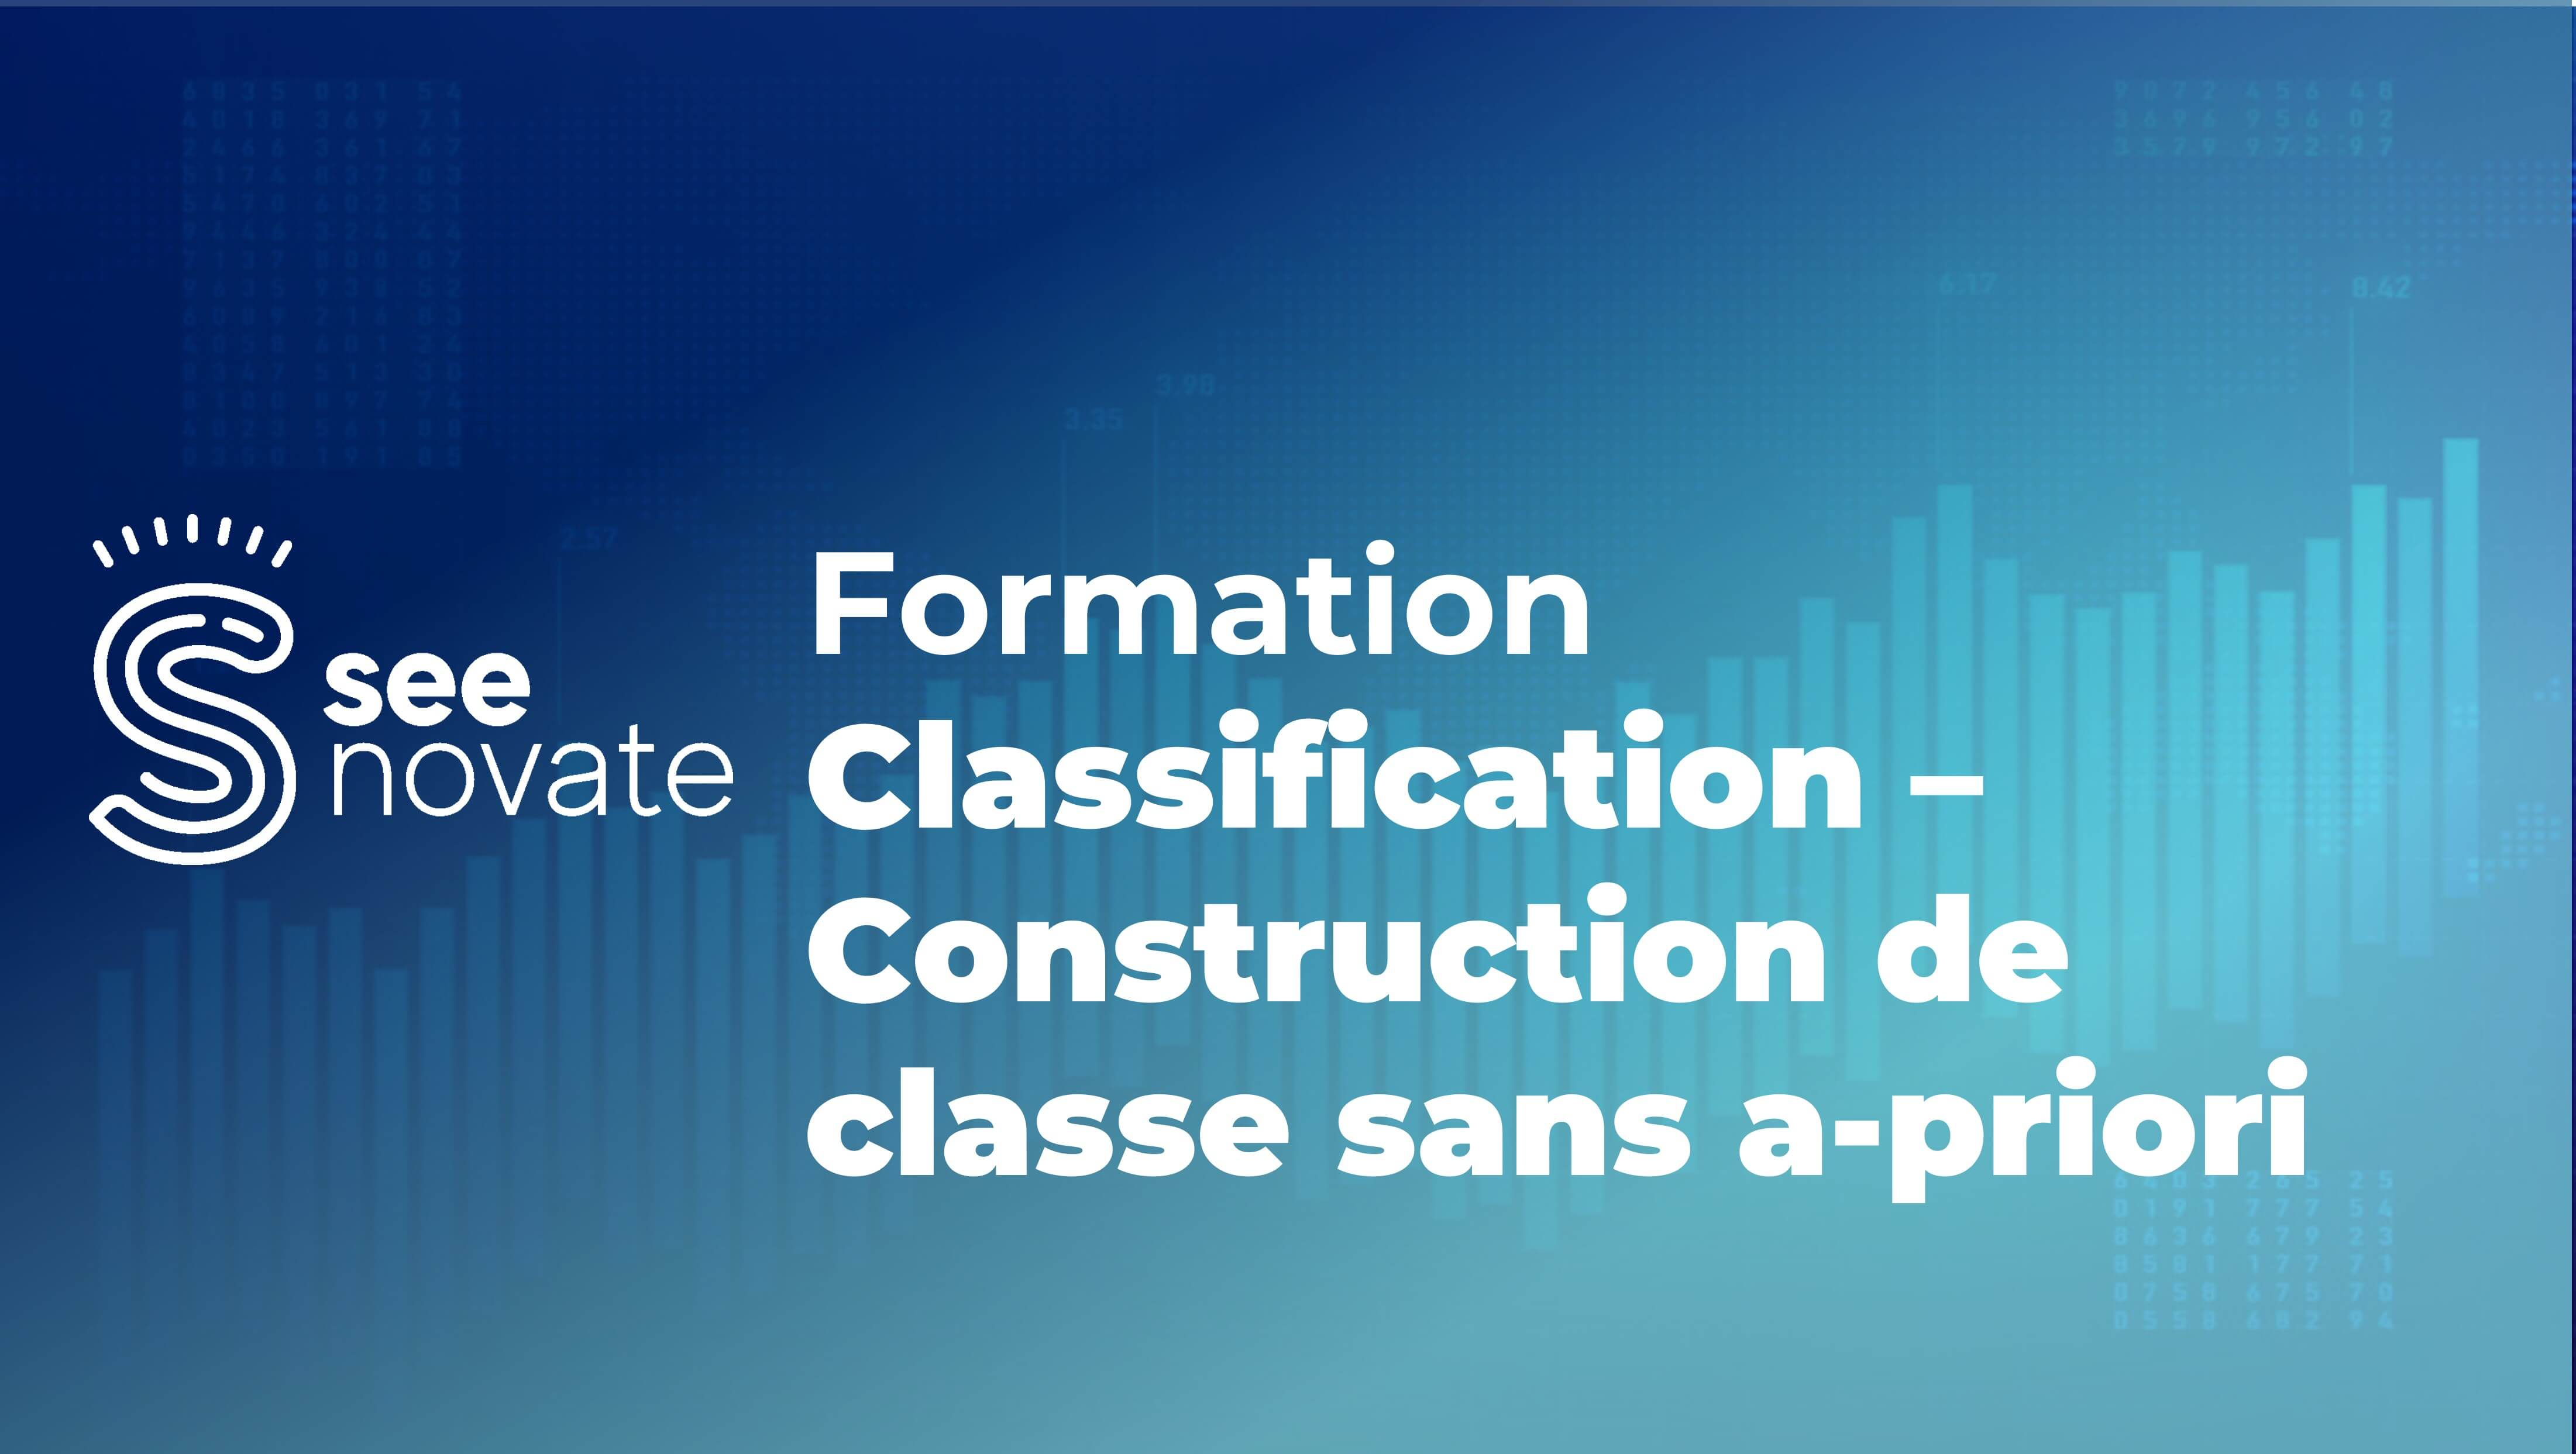 formation seenovate clustering